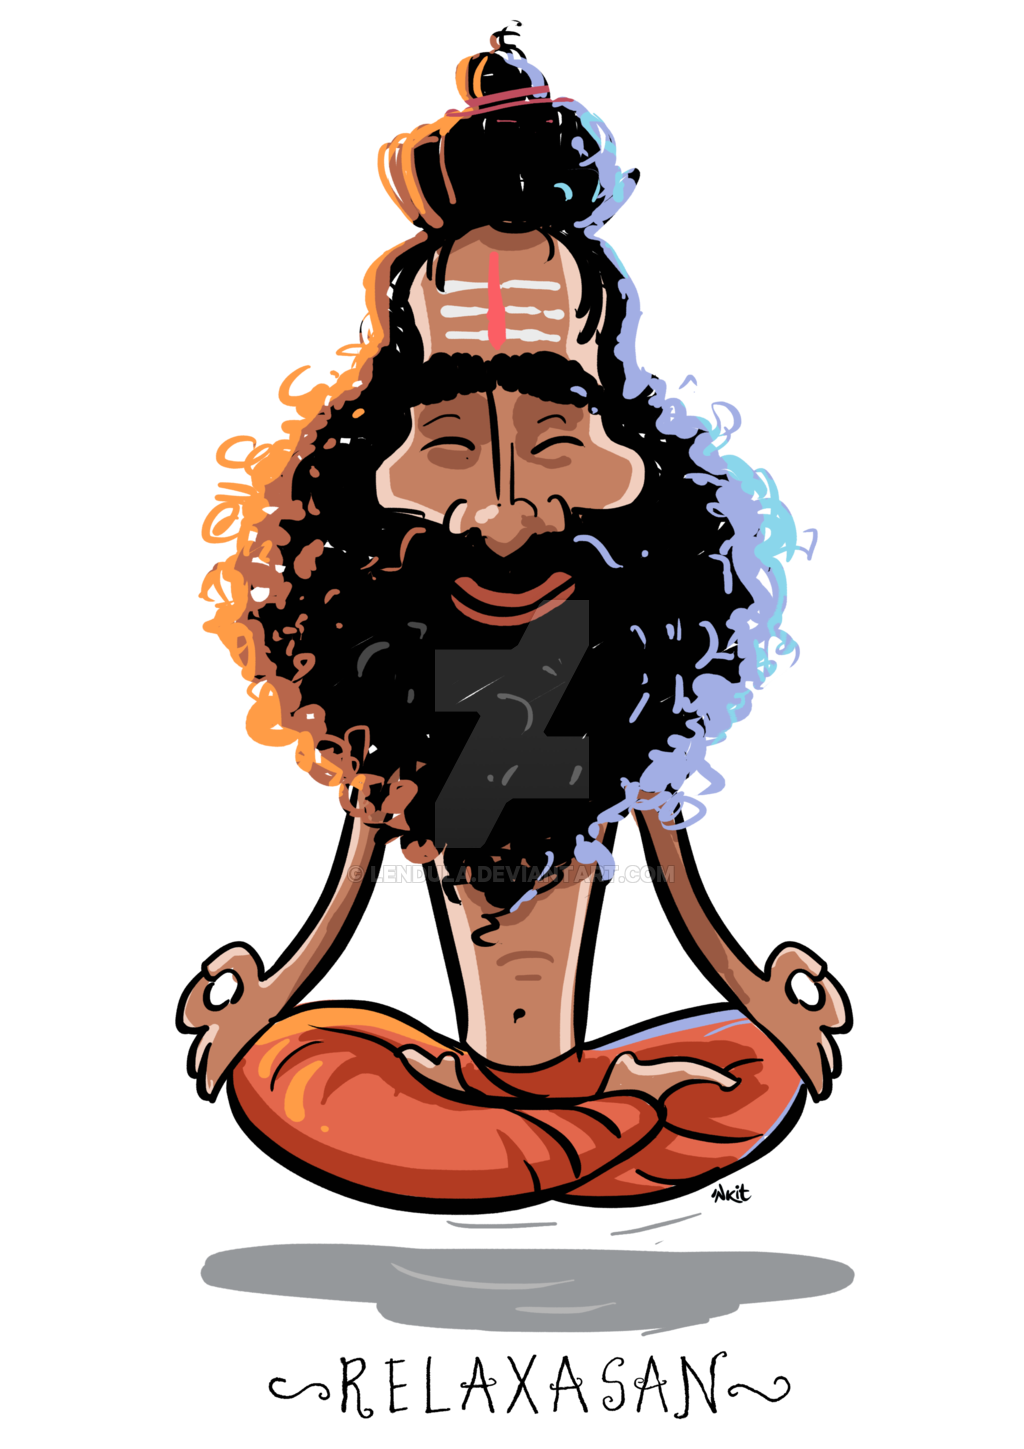 Malayalam black magic mantras. Warrior clipart tamil